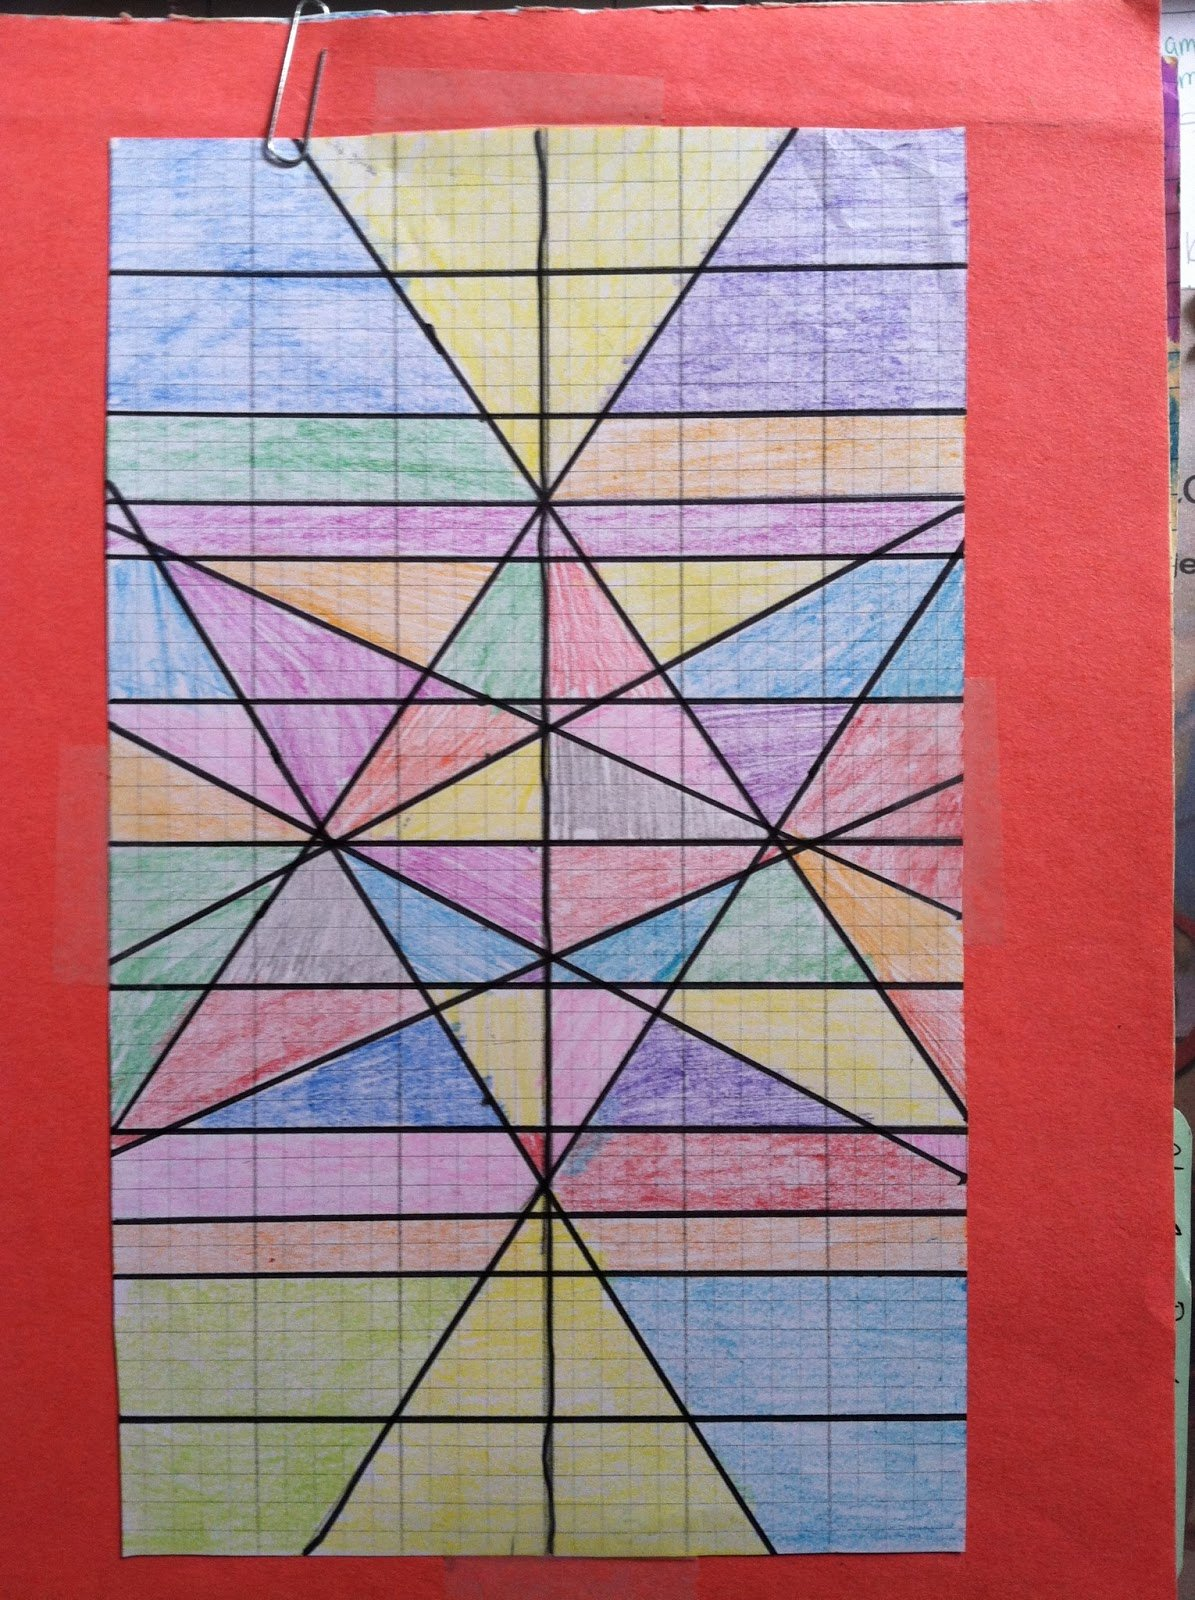 Stained Glass Windows Worksheet Inspirational 8 is My Lucky Number Stained Glass Window Graphing Lines